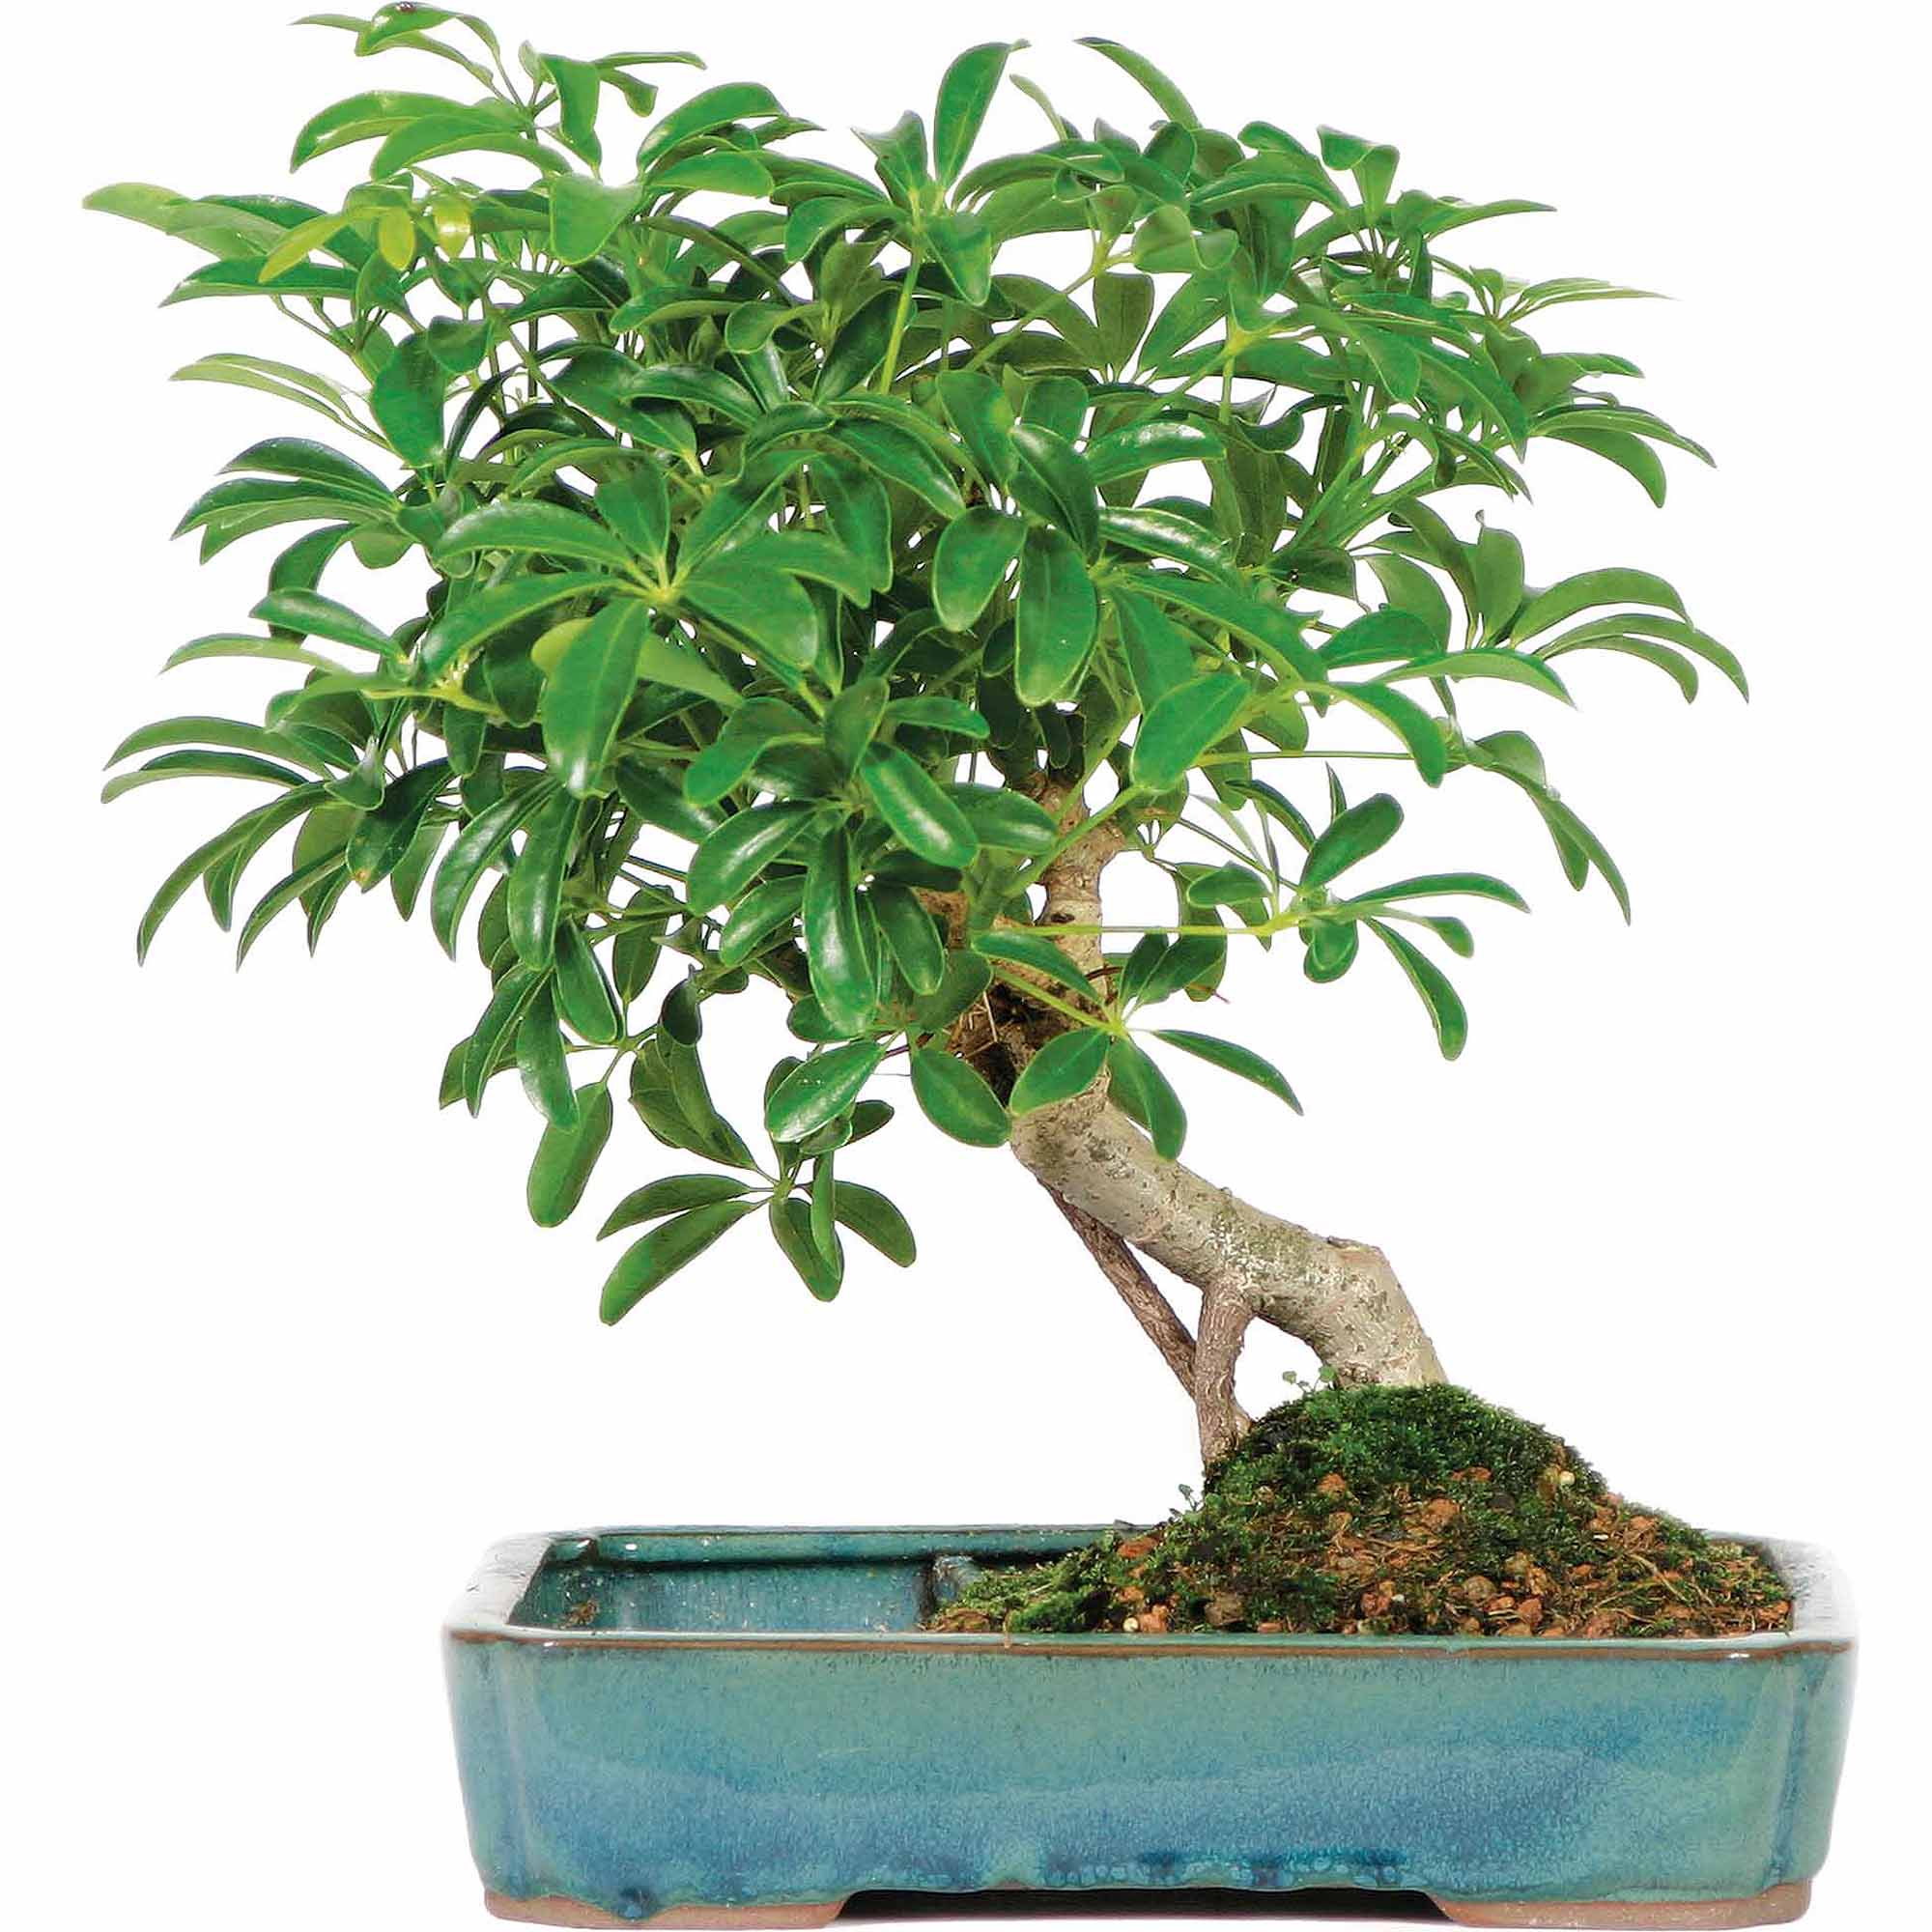 Brussel's Hawaiian Umbrella in Land Water Pot Bonsai Large (Indoor) by Brussel's Bonsai